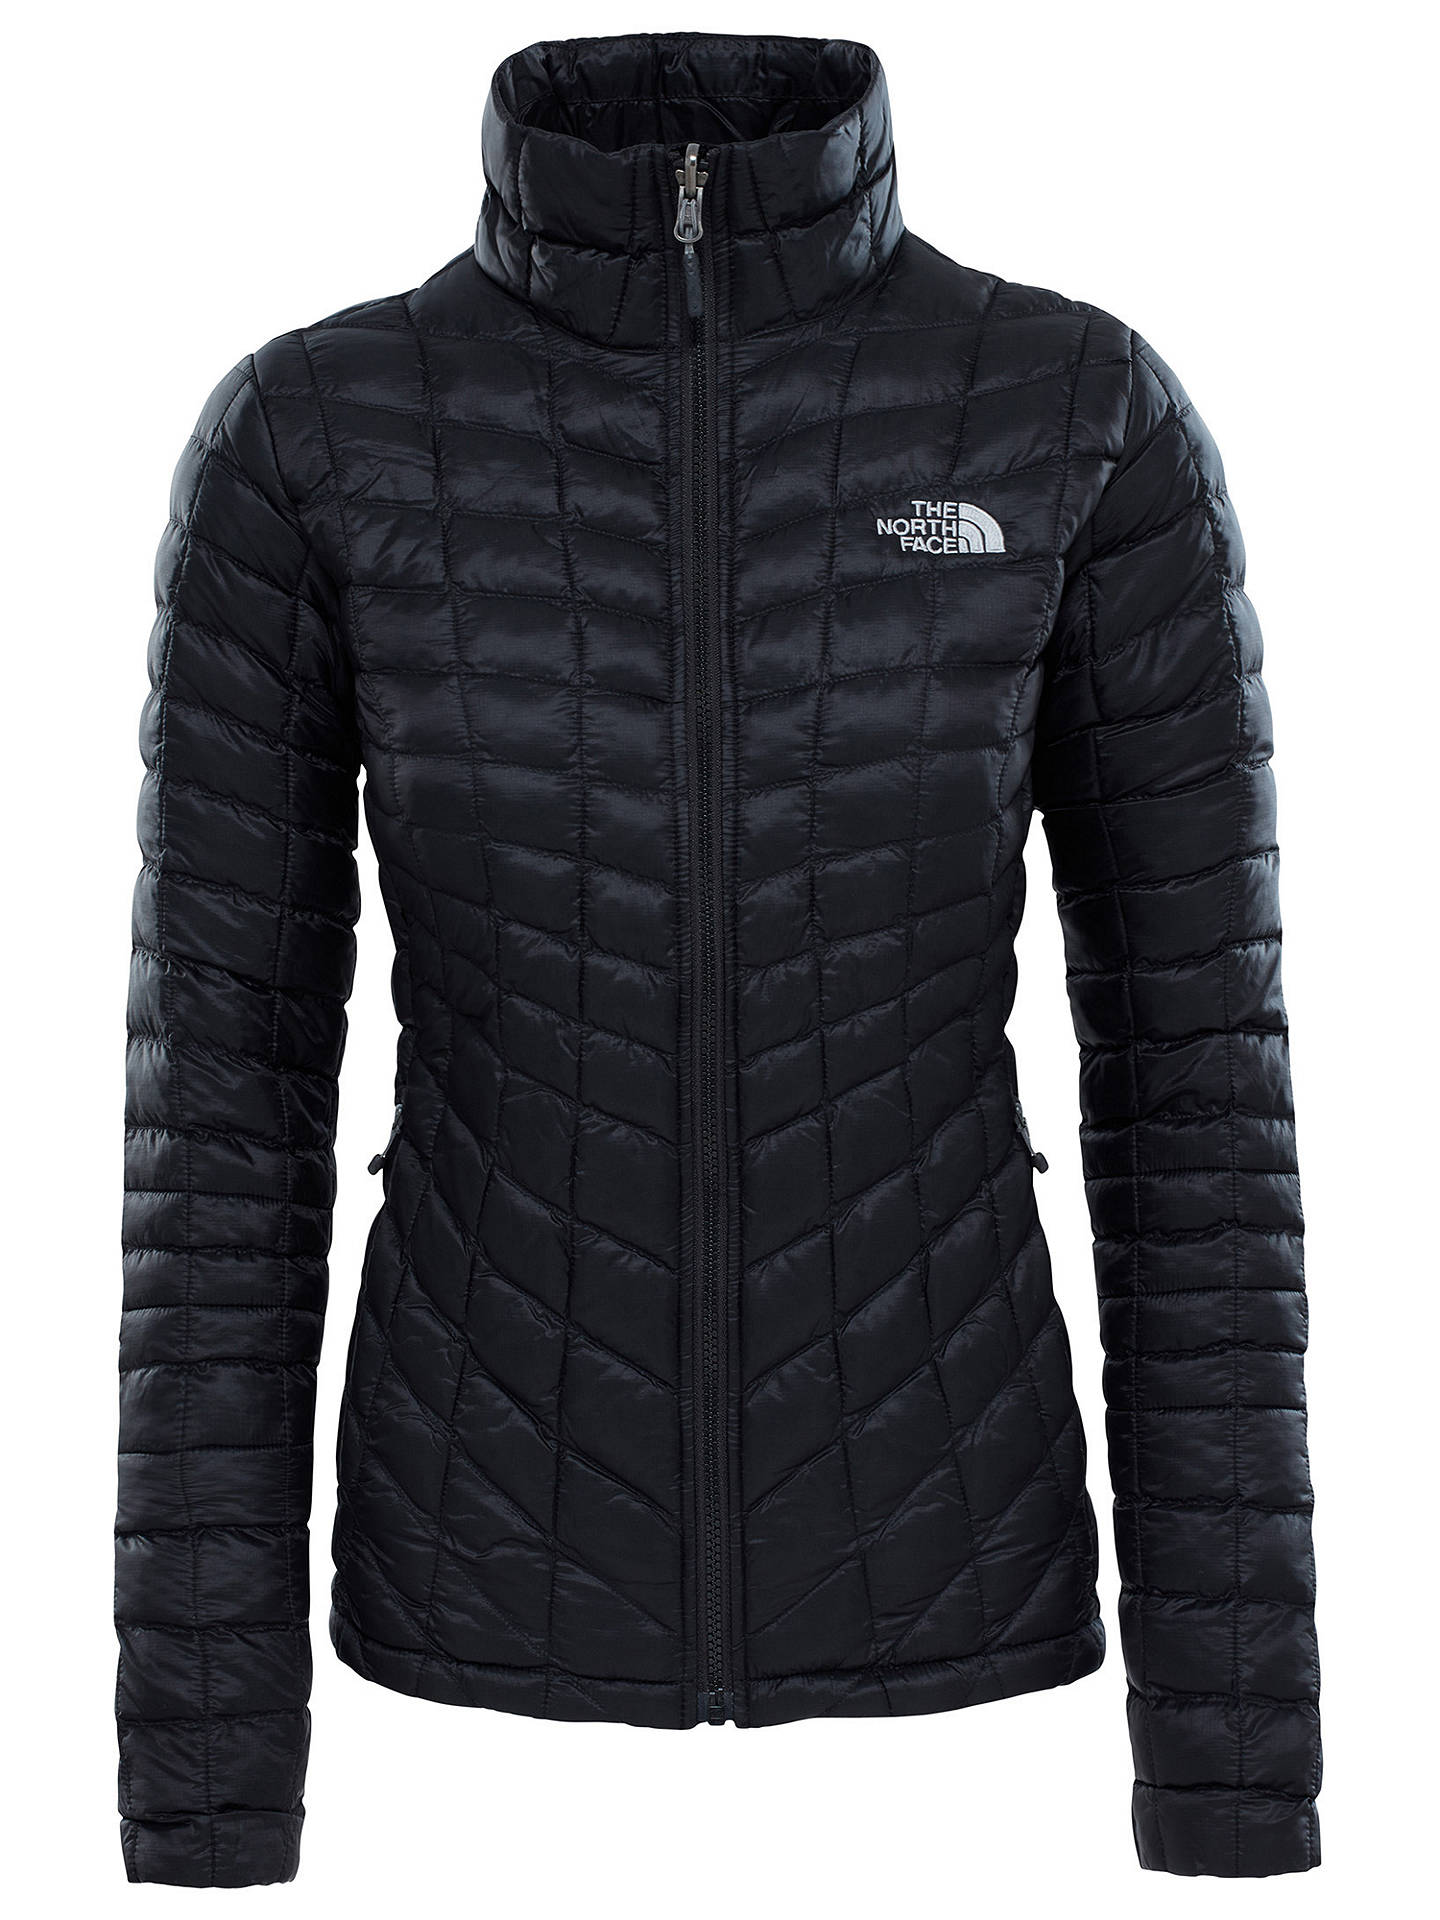 268f844a7 The North Face Thermoball Full-Zip Women's Insulated Jacket, Black ...